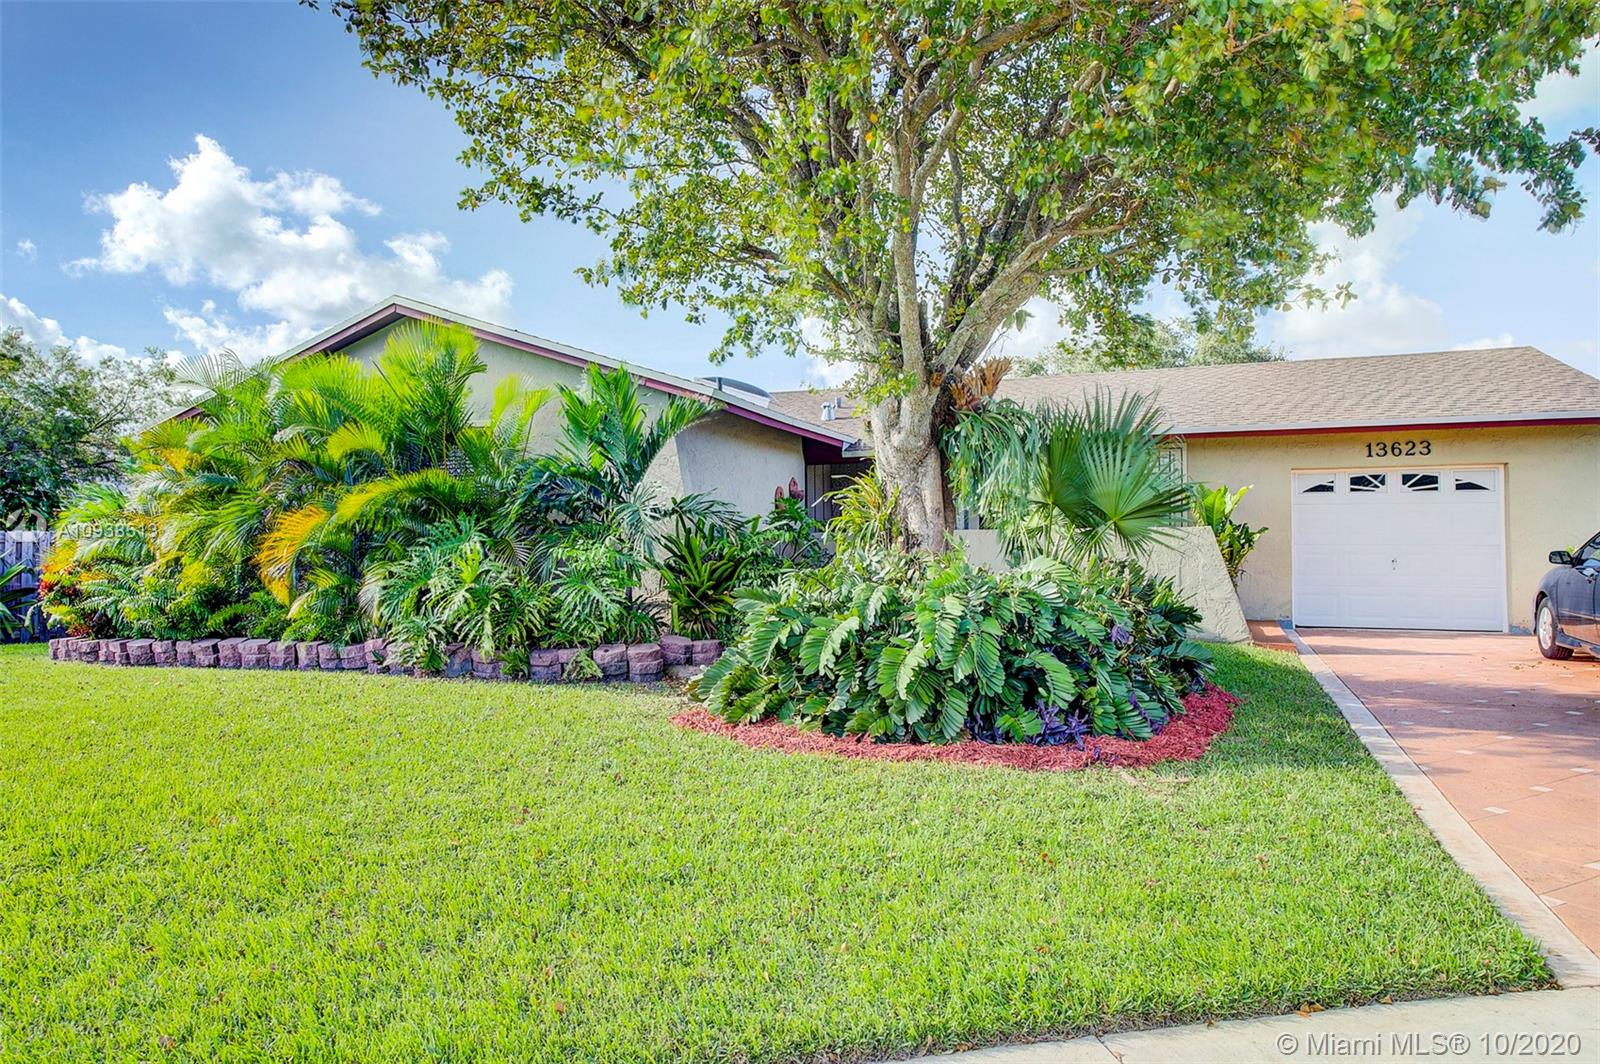 Located in the desirable neighborhood of Winston Park this 3 bedroom, 2 bath home has plenty of potential to make it your own.  This property sits on a nice size lot and on a  cul-de sac, no traffic street.  A new roof was installed in March of 2018. The property has plenty of space for a pool, boat or RV and or to expand.   The low association fee of $44/month gives the residents access to 2 pools, clubhouse, tennis, gym, soccer field and basketball courts.  This property has a lot of potential and is located close to great schools, parks and shopping nearby. Home is being sold AS-IS.